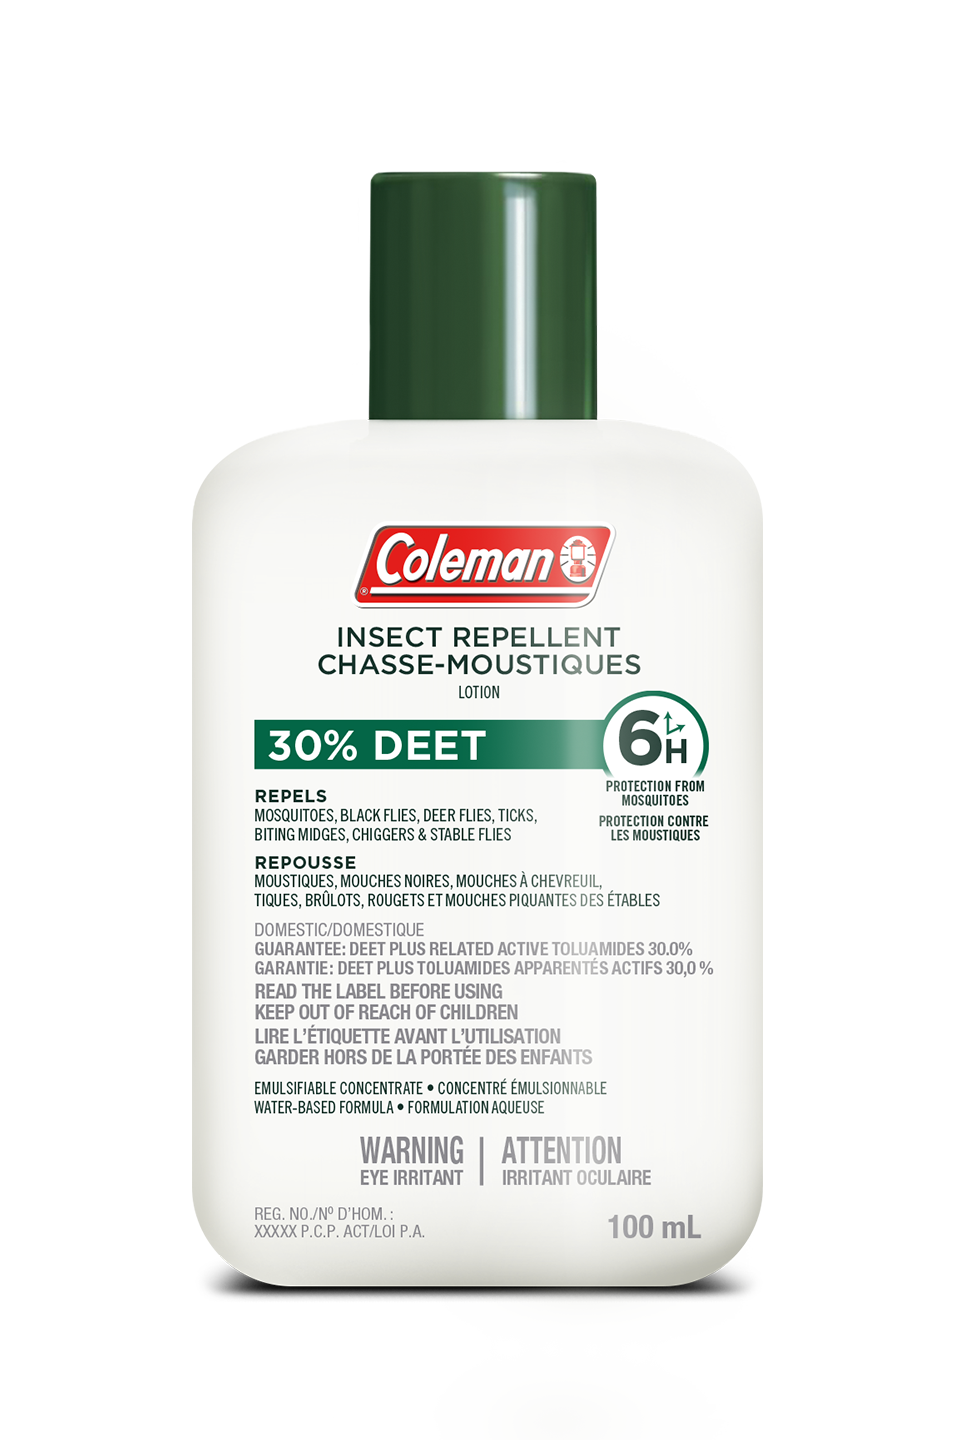 Coleman-Lotion-30-DEET-100ml-bottle.png